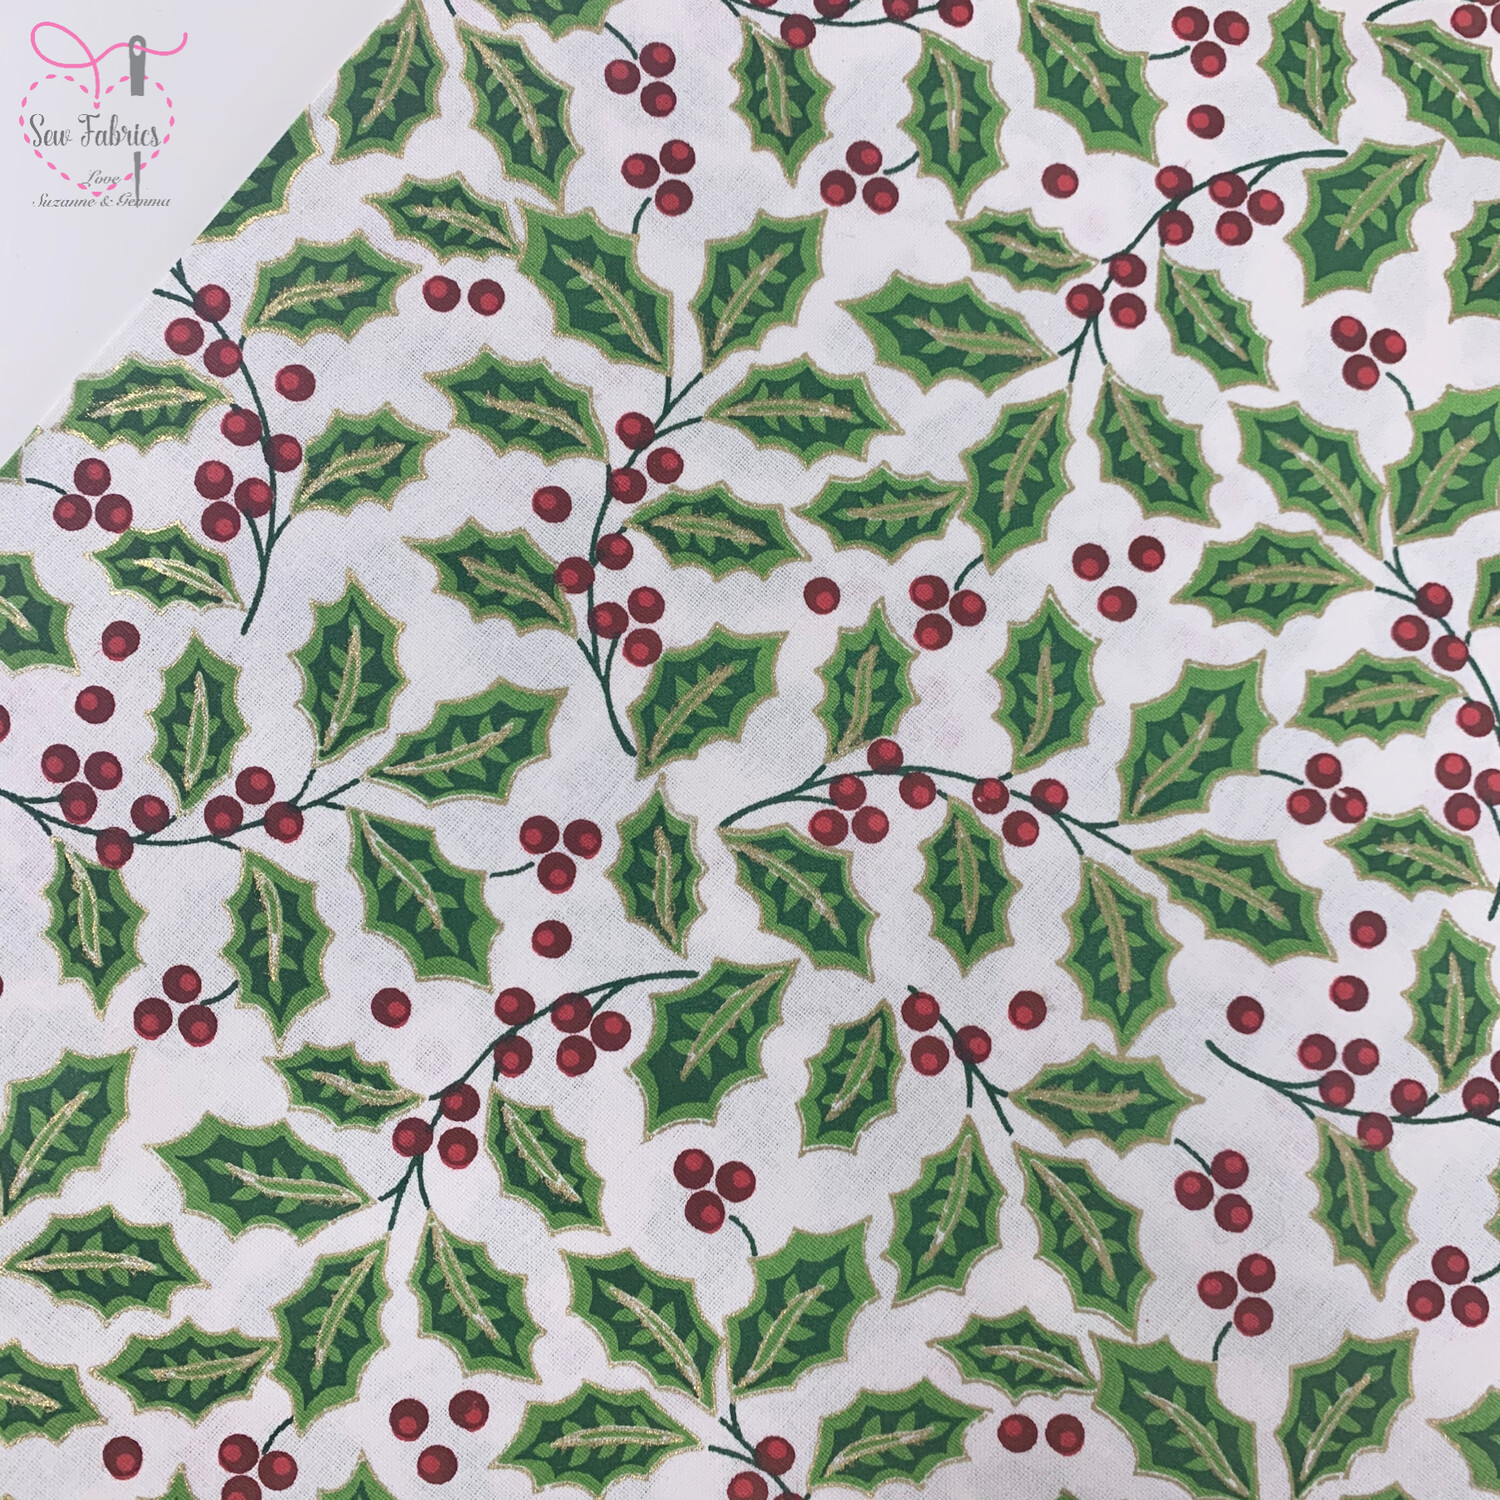 John Louden White Large Holly Christmas Print Fabric, 100% Cotton, Festive Novelty Material